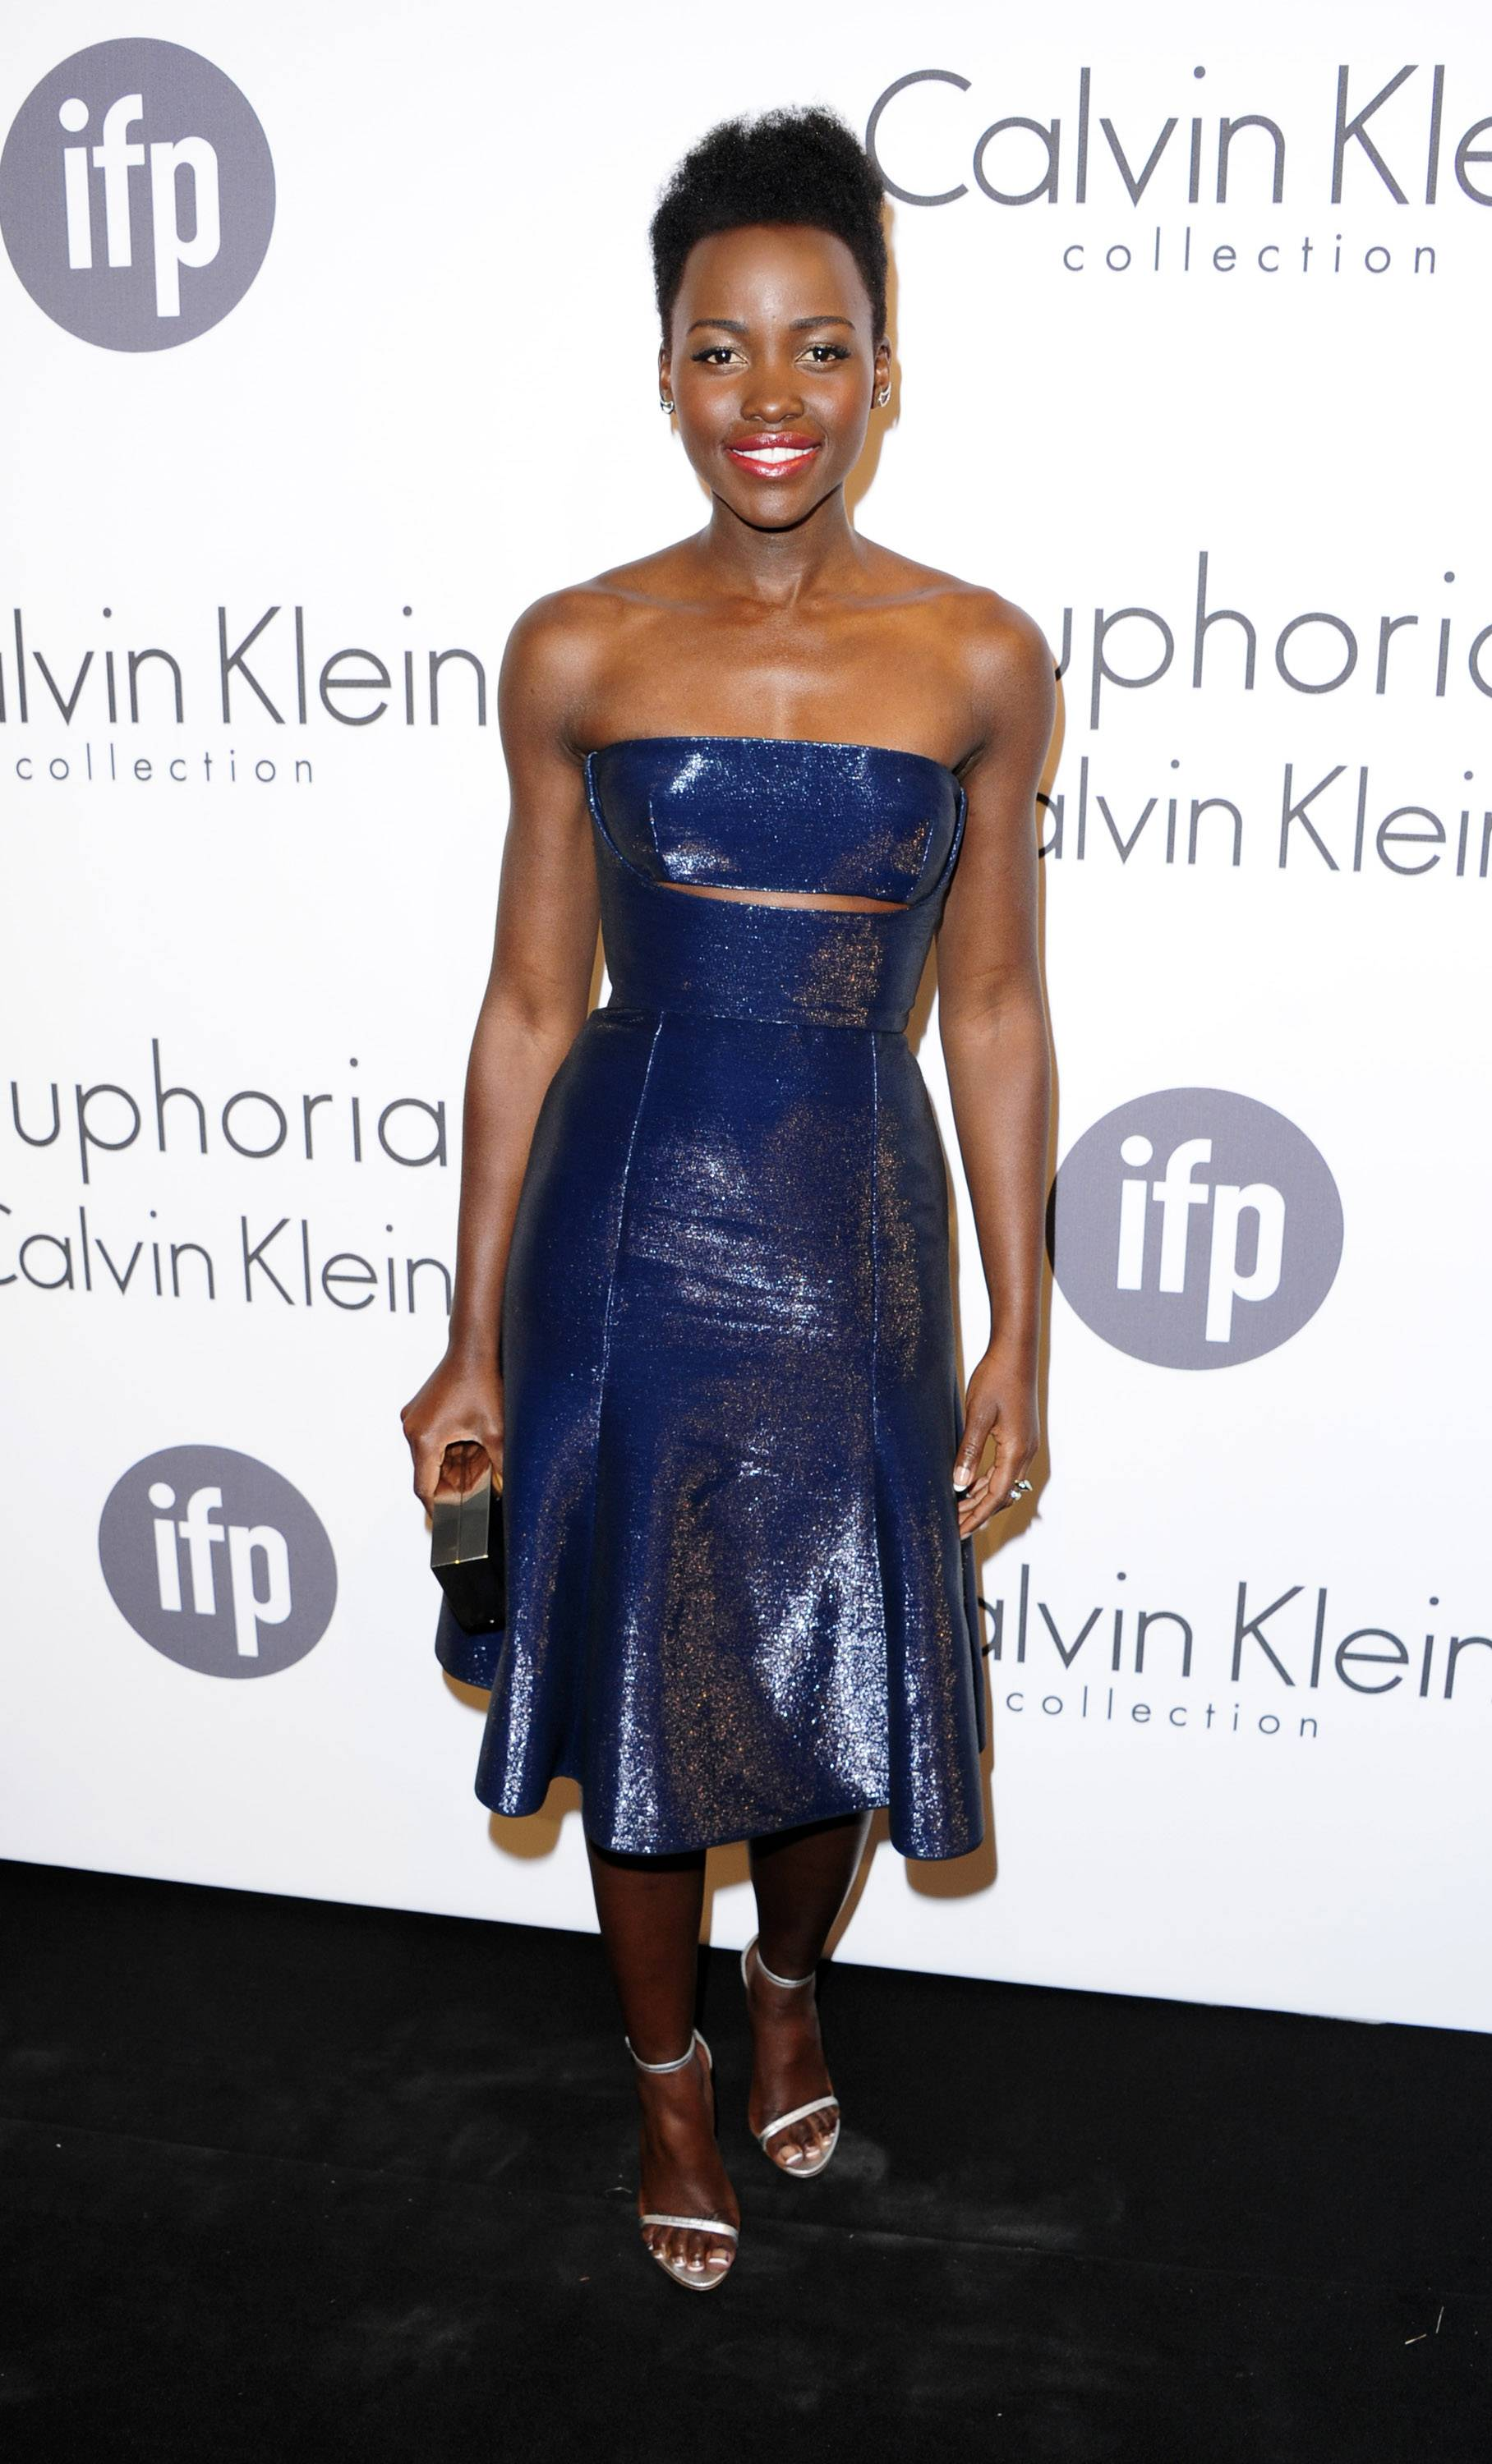 Lupita Nyong'o attends the IFP and Calvin Klein Women In Film Party on May 15 at the 67th annual Cannes Film Festival in southern France.